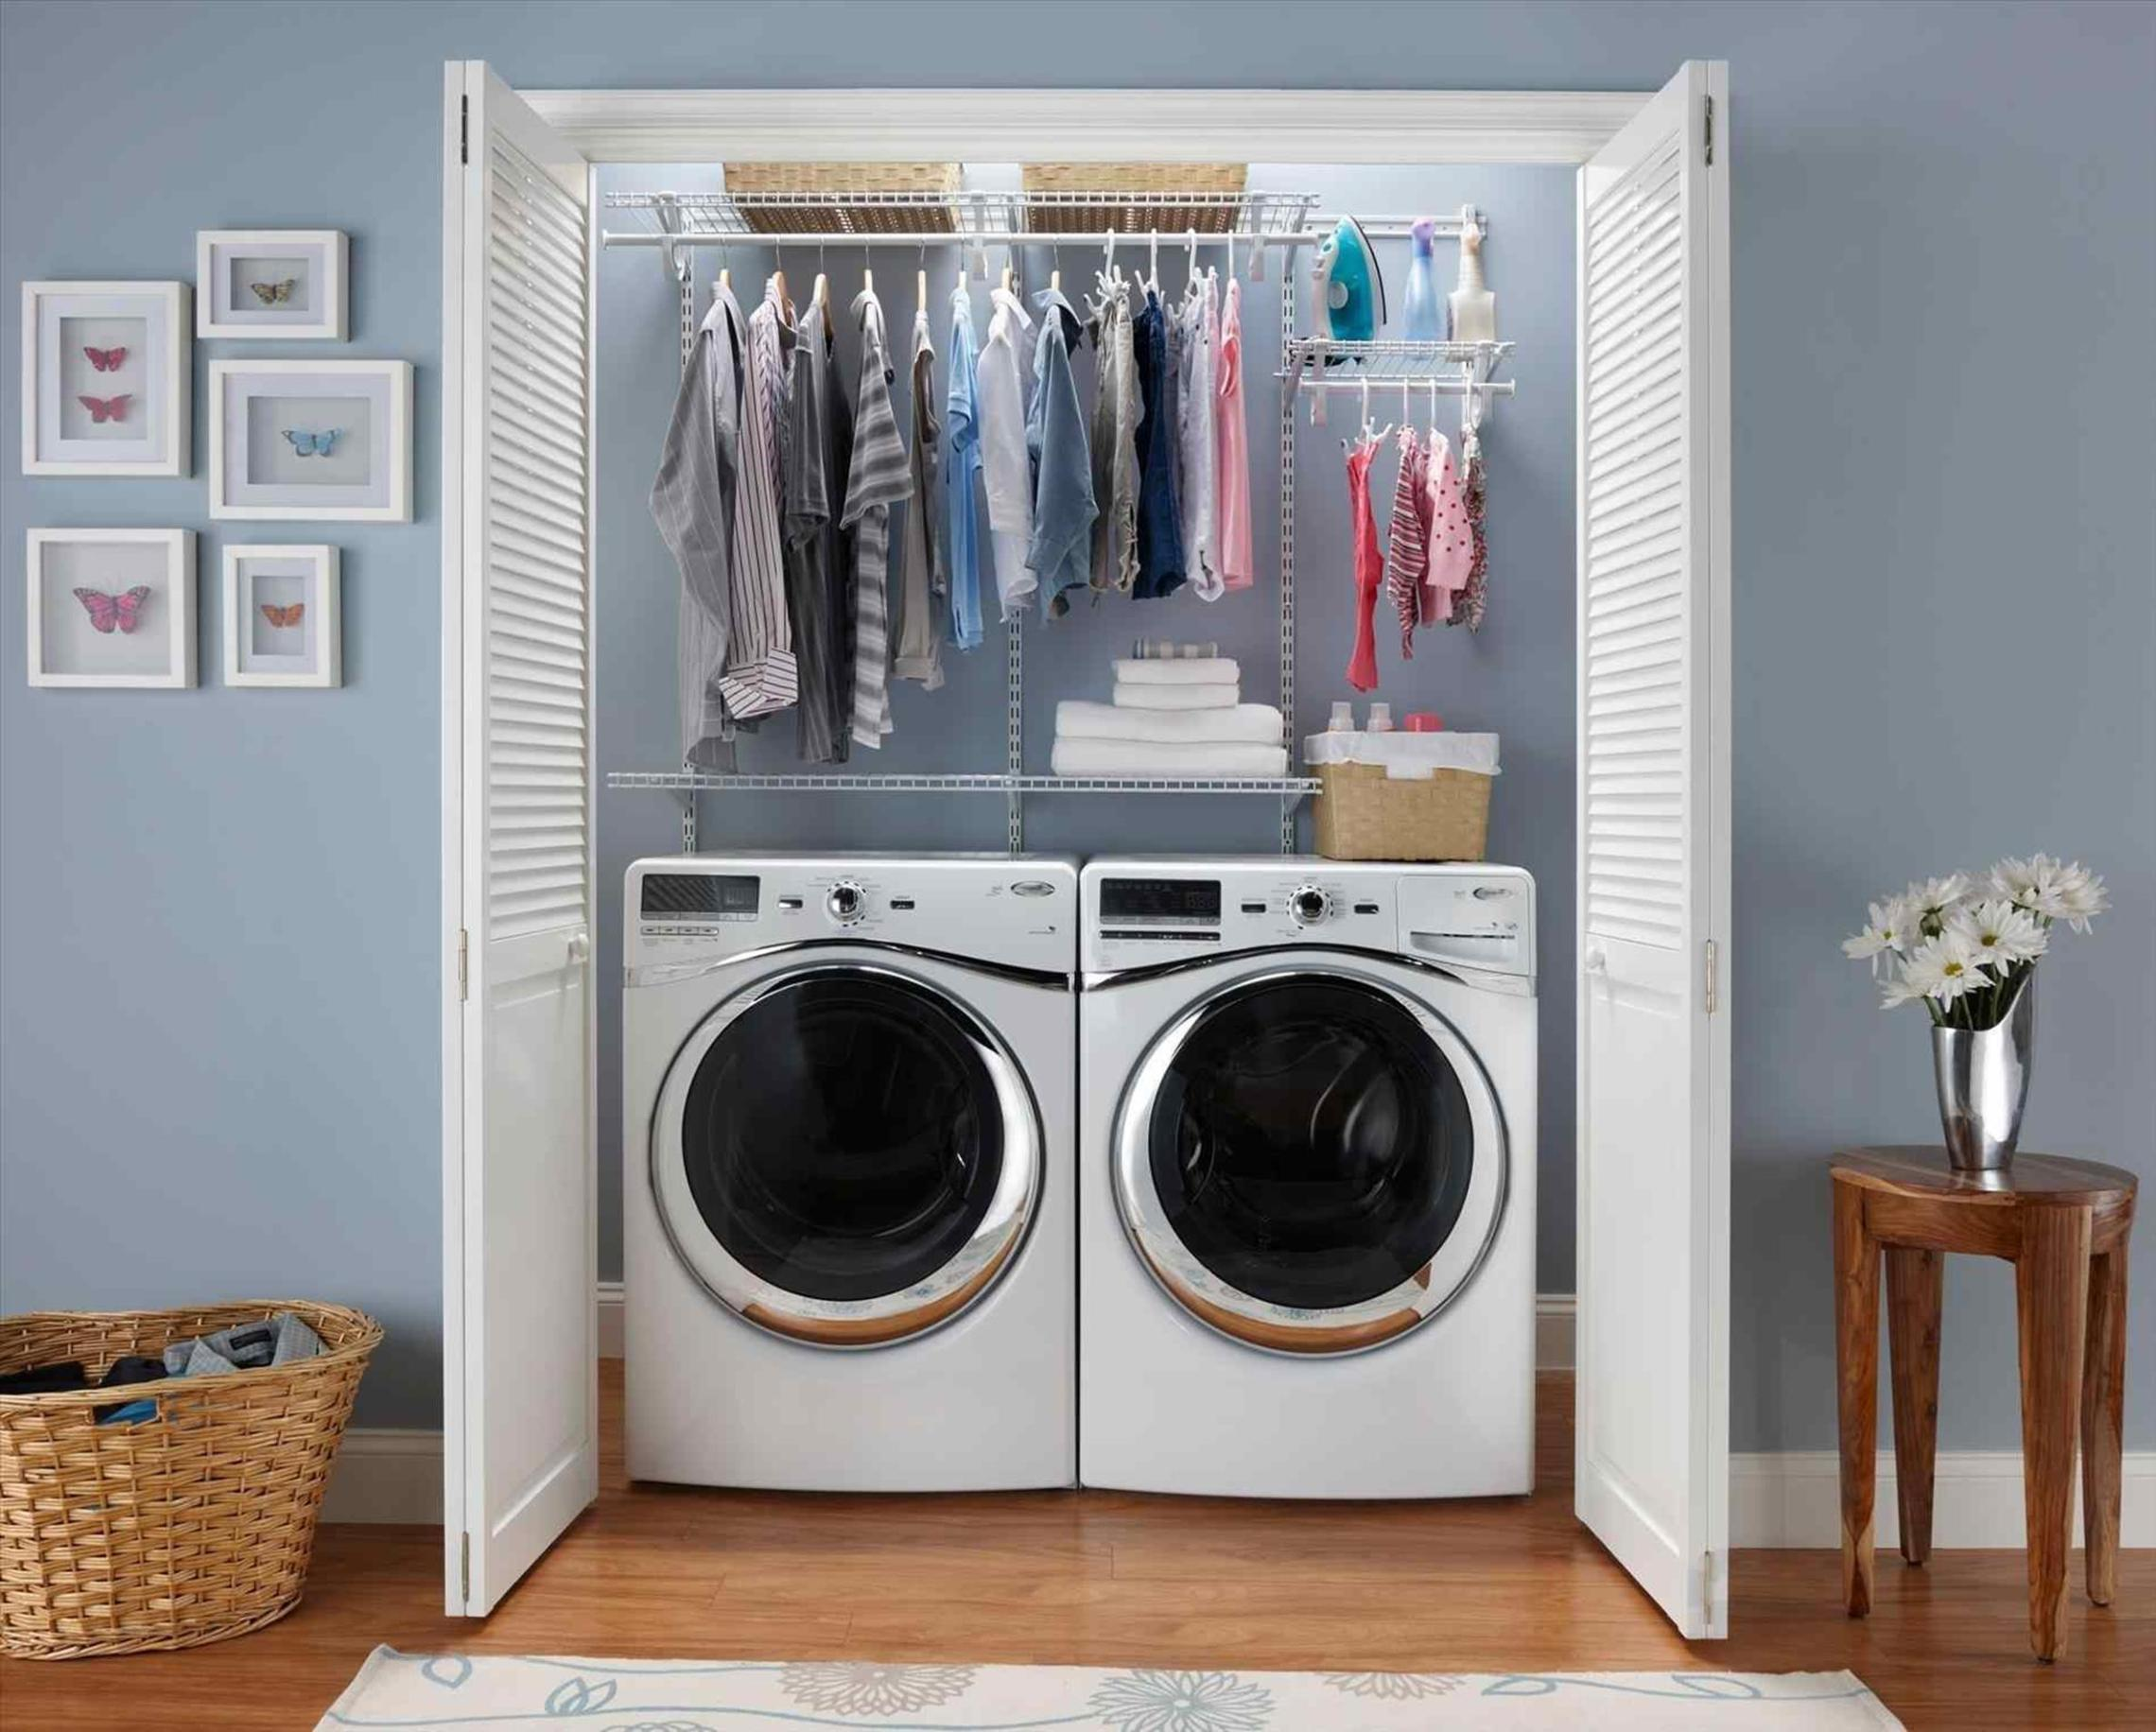 Decorating A Laundry Room On A Budget 17